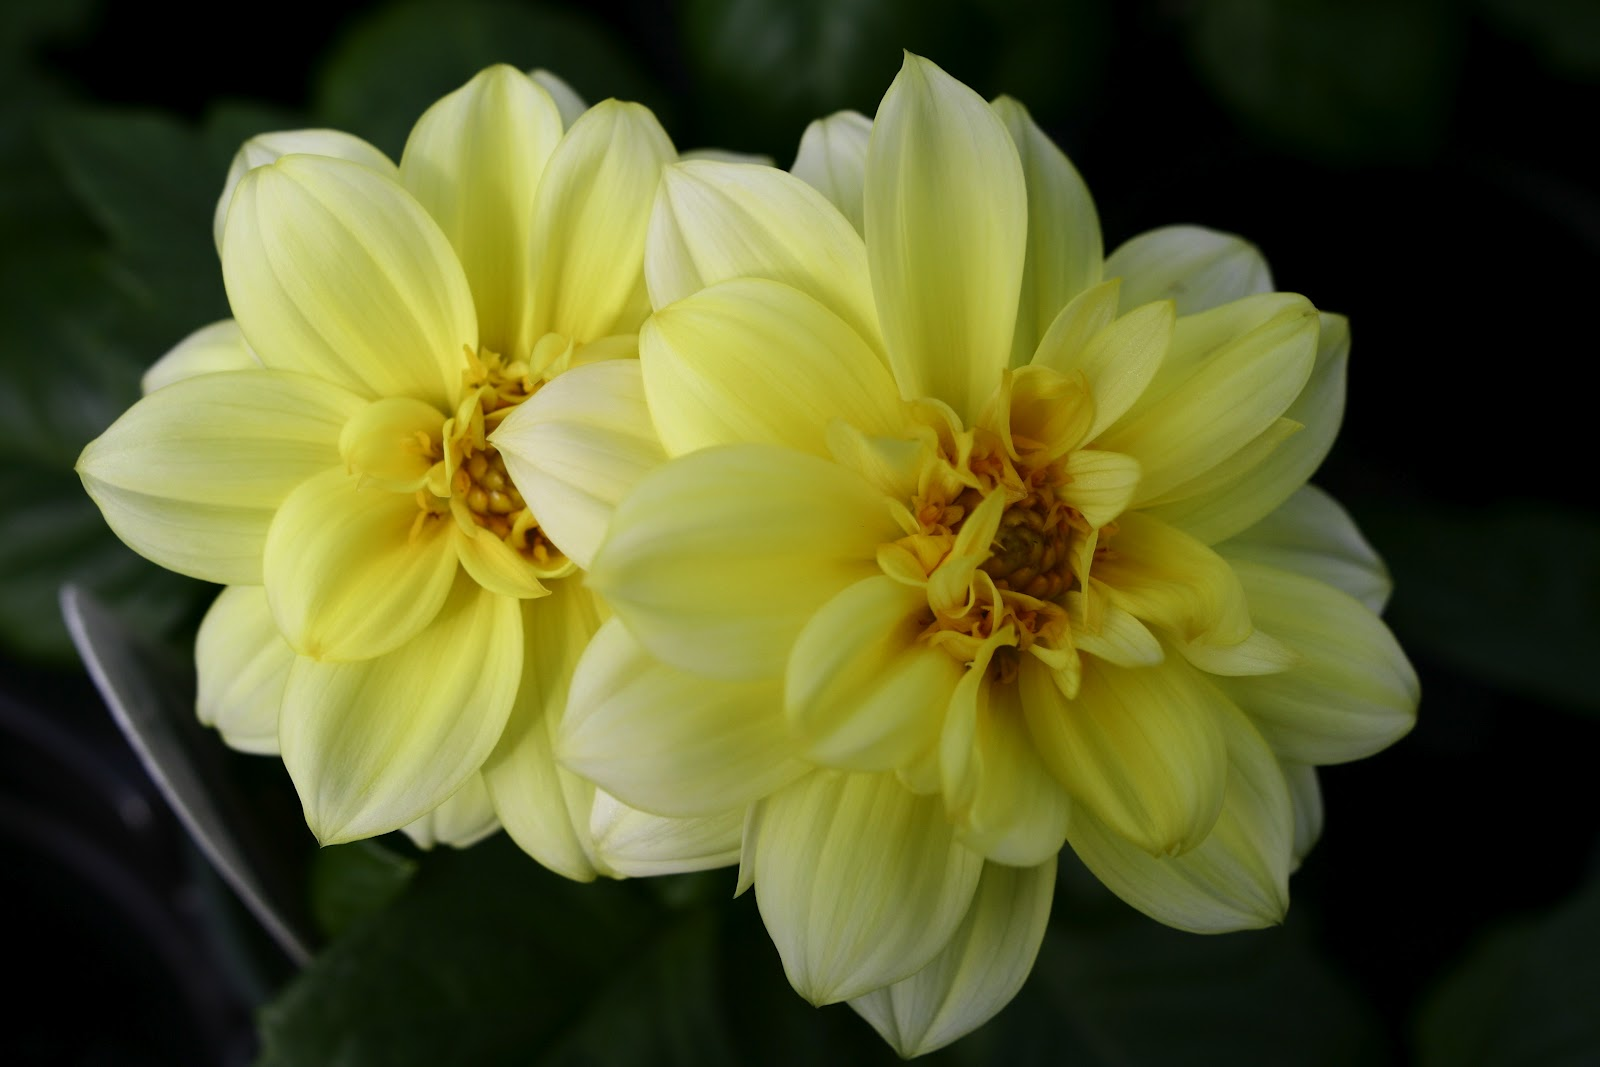 Yellow Flowers That Bloom In Spring 7 High Resolution Wallpaper